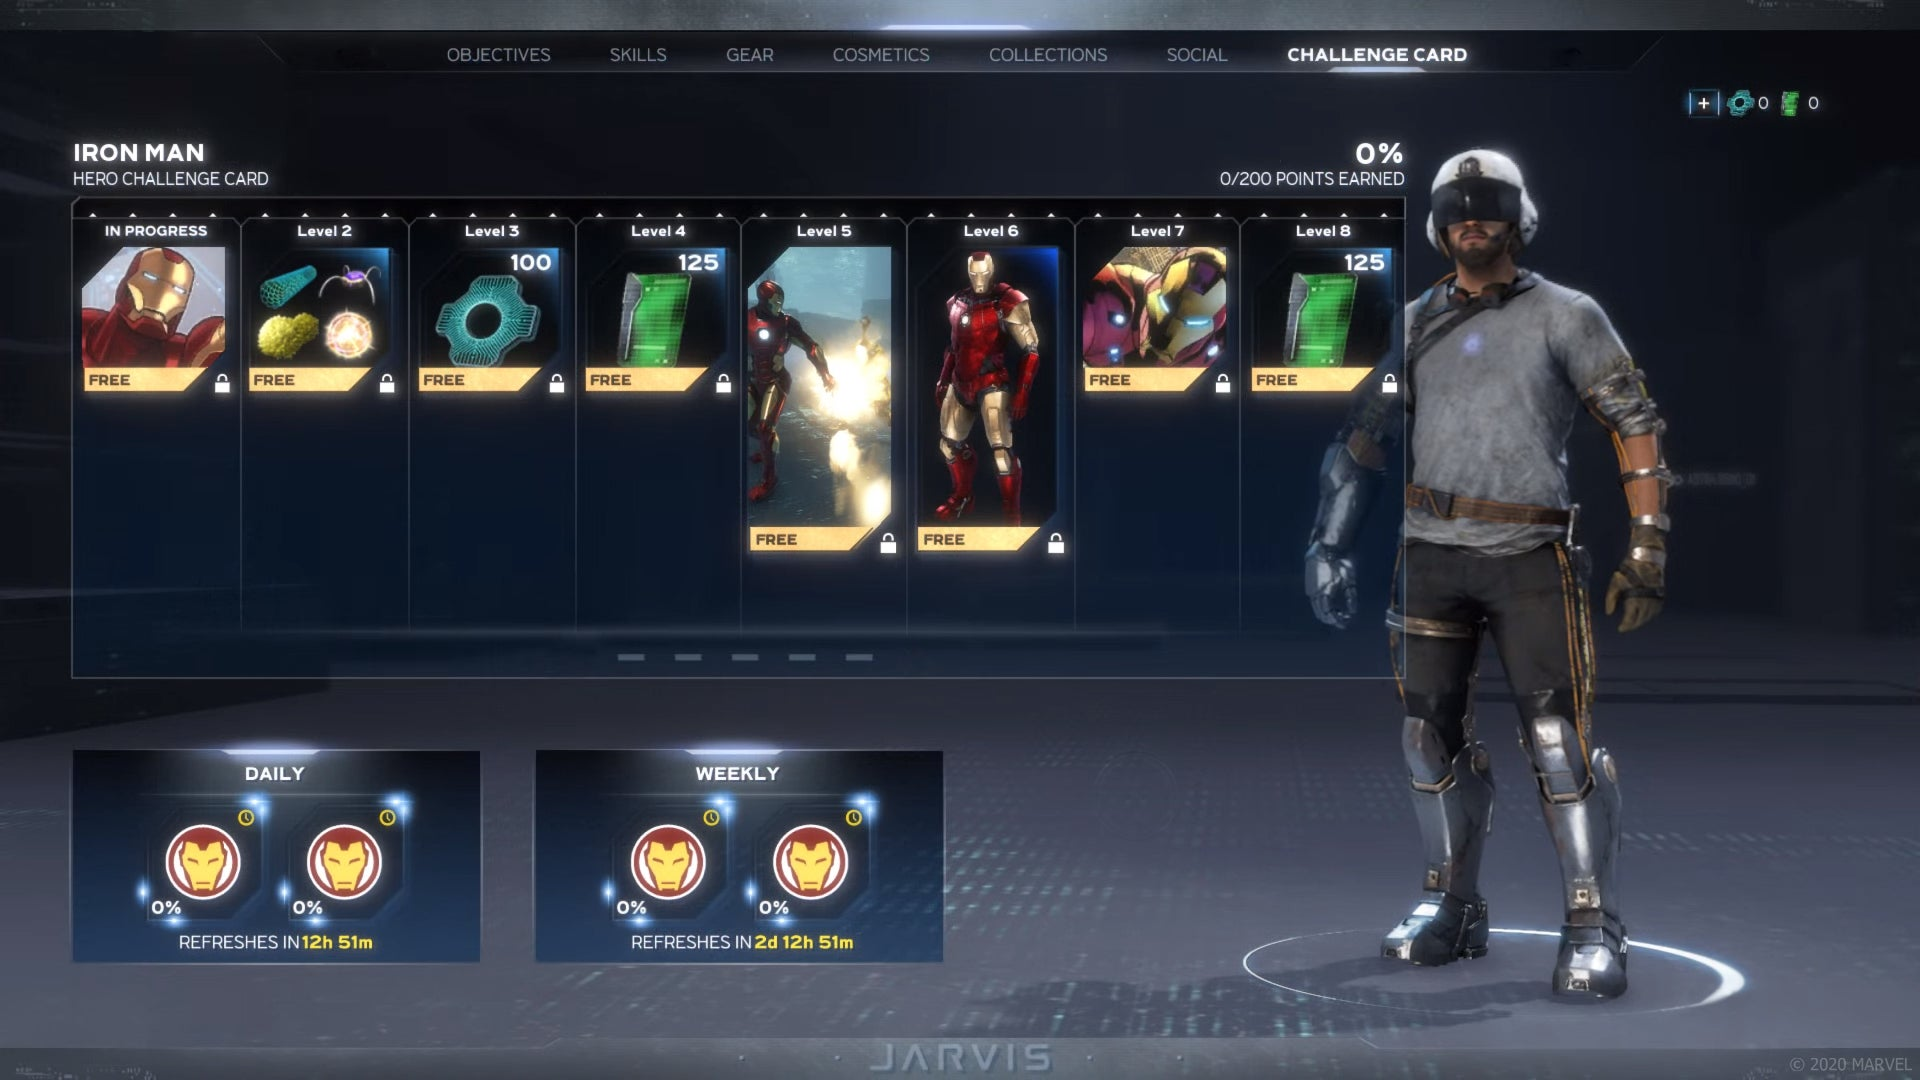 Hero Challenge Card system with Iron Man in his Makeshift Armour on display